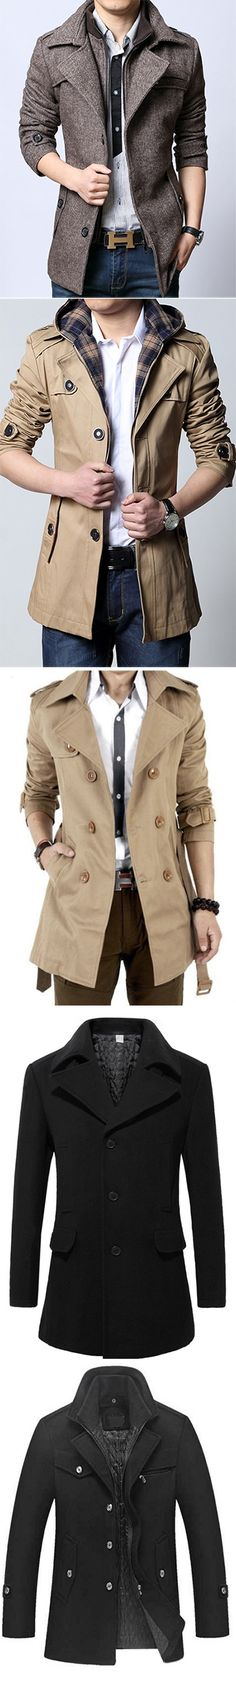 Men's Coats and Jackets. Fashion picked for you